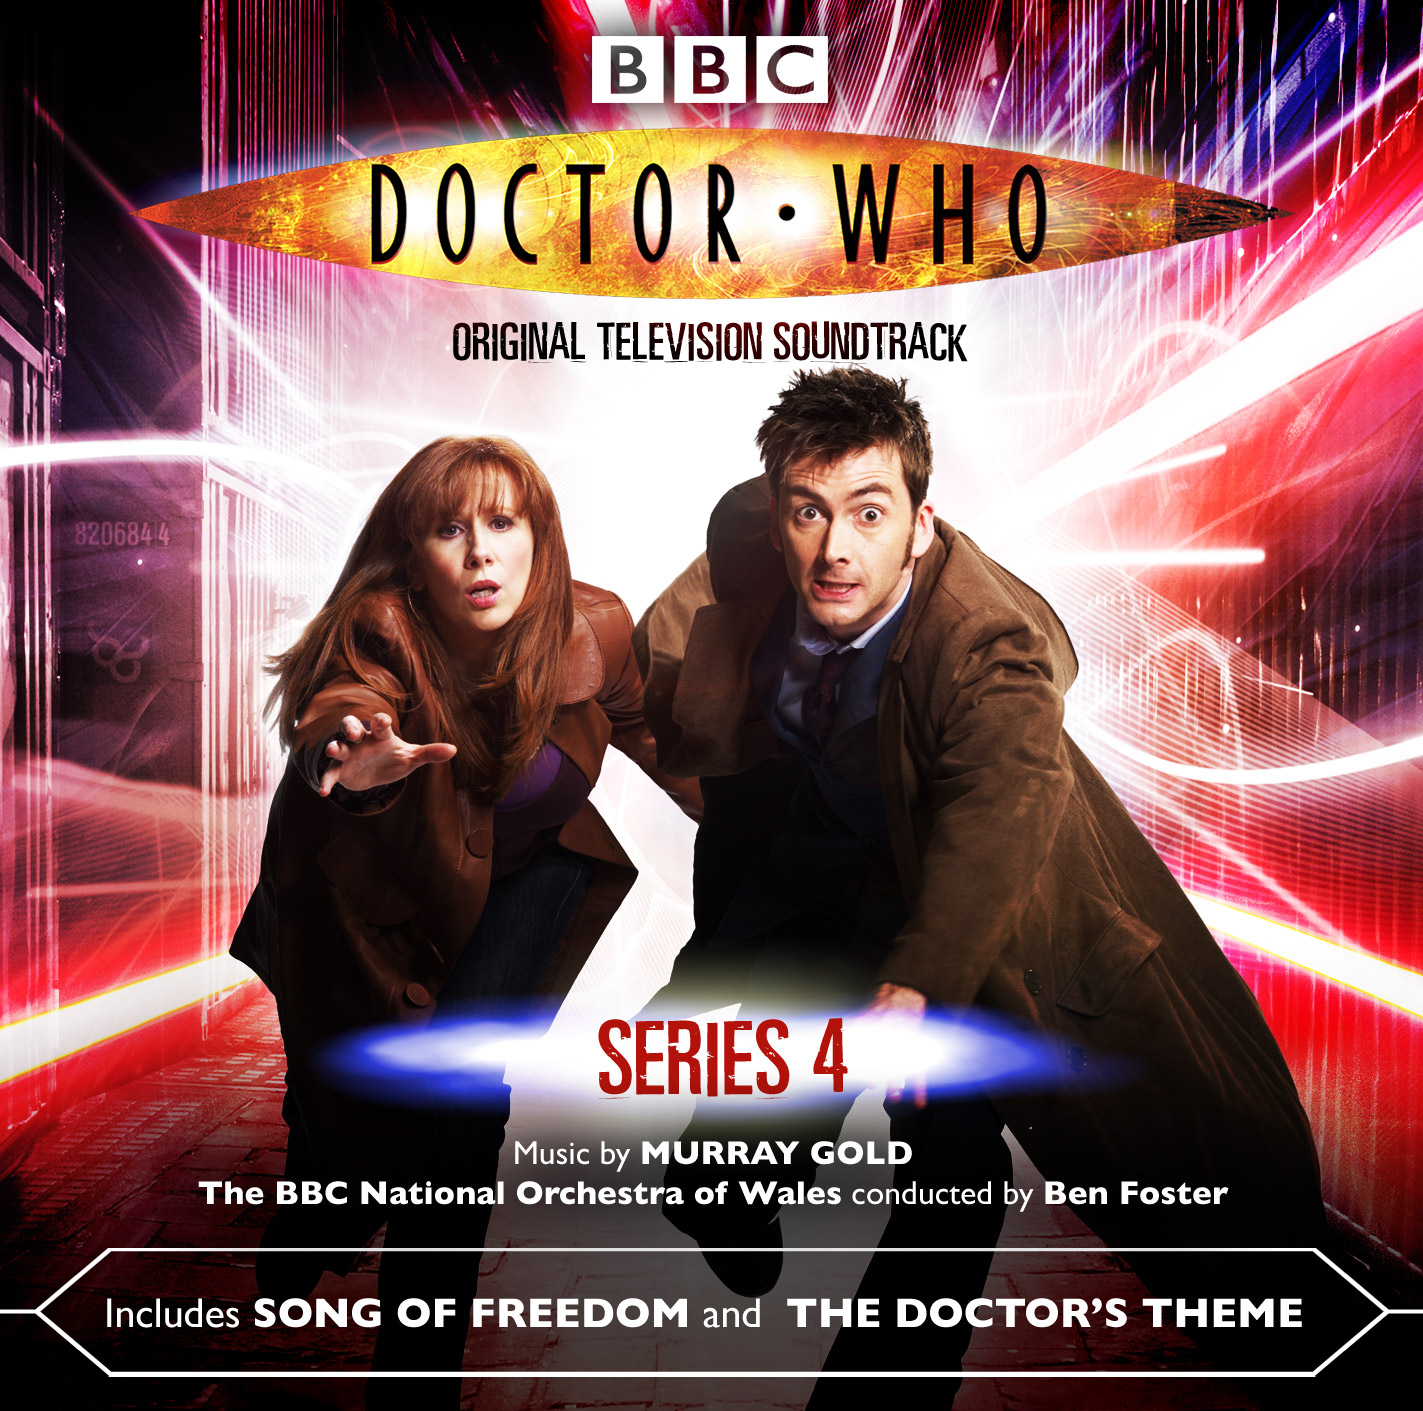 Doctor Who Series 4 Soundtrack Coming In November Bad Astronomy 7 Way Trailer Plug Wiring Diagram Contrail Cover